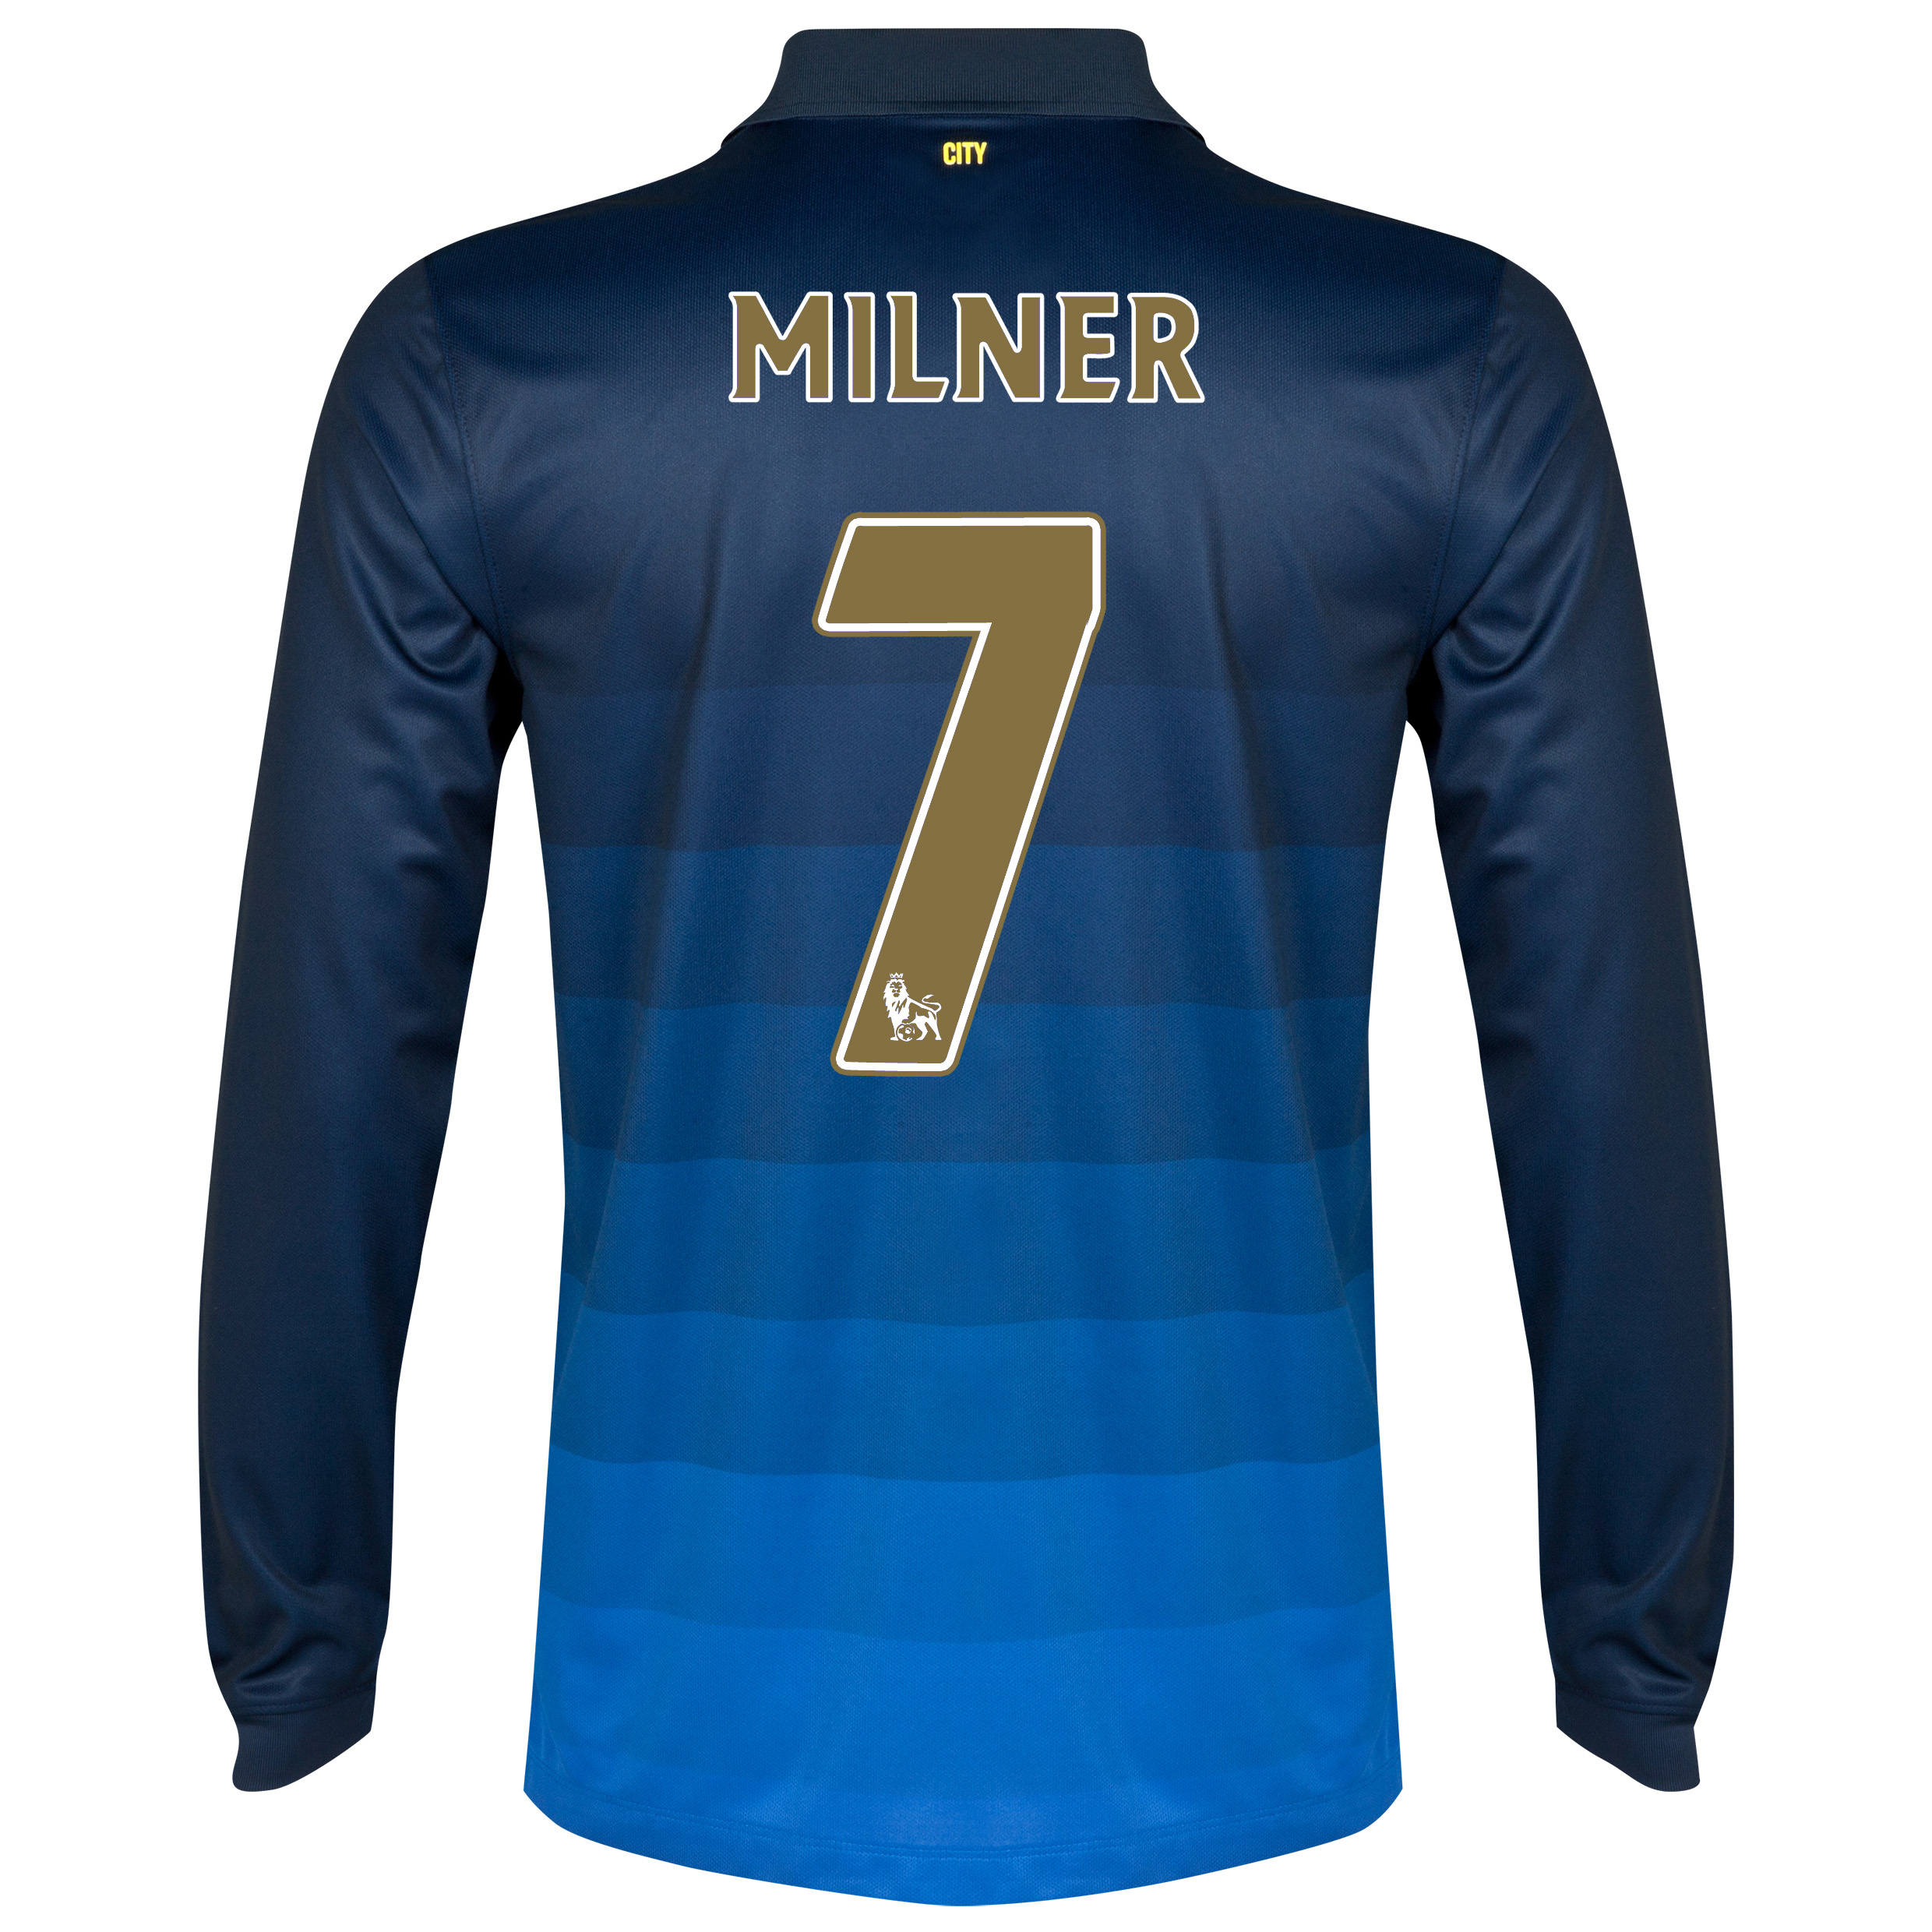 Manchester City Away Shirt 2014/15 - Long Sleeve Dk Blue with Milner 7 printing